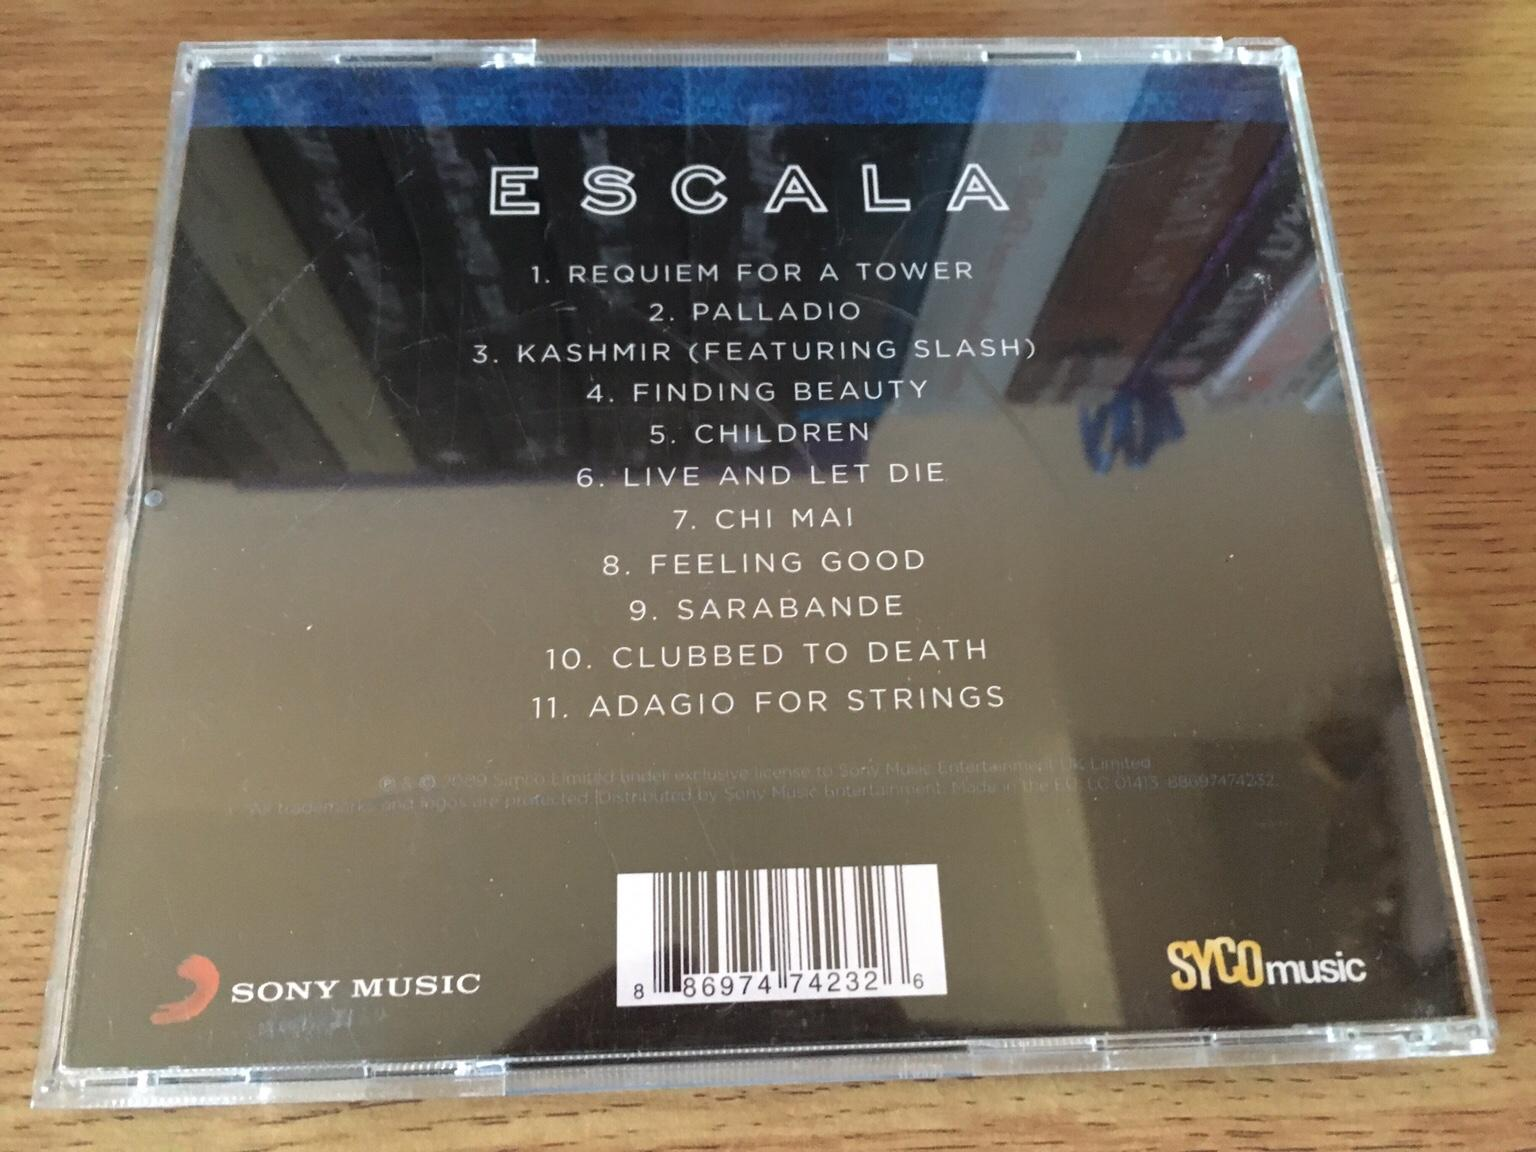 Escala Instrumental Music CD